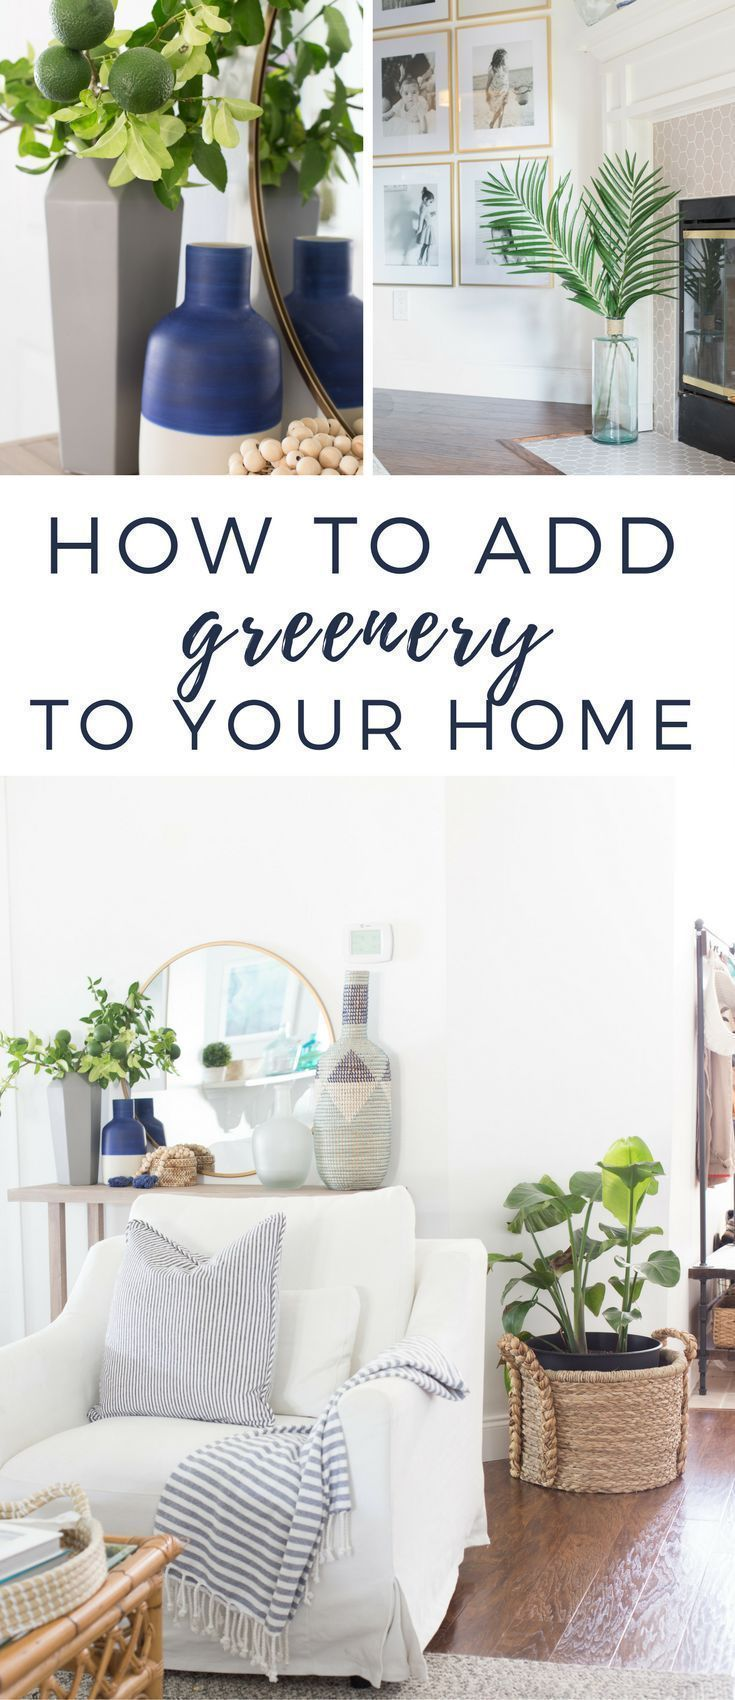 Innendekoration Tipps | Decorating With Greenery Tips For Adding Color To Your Home Crafts